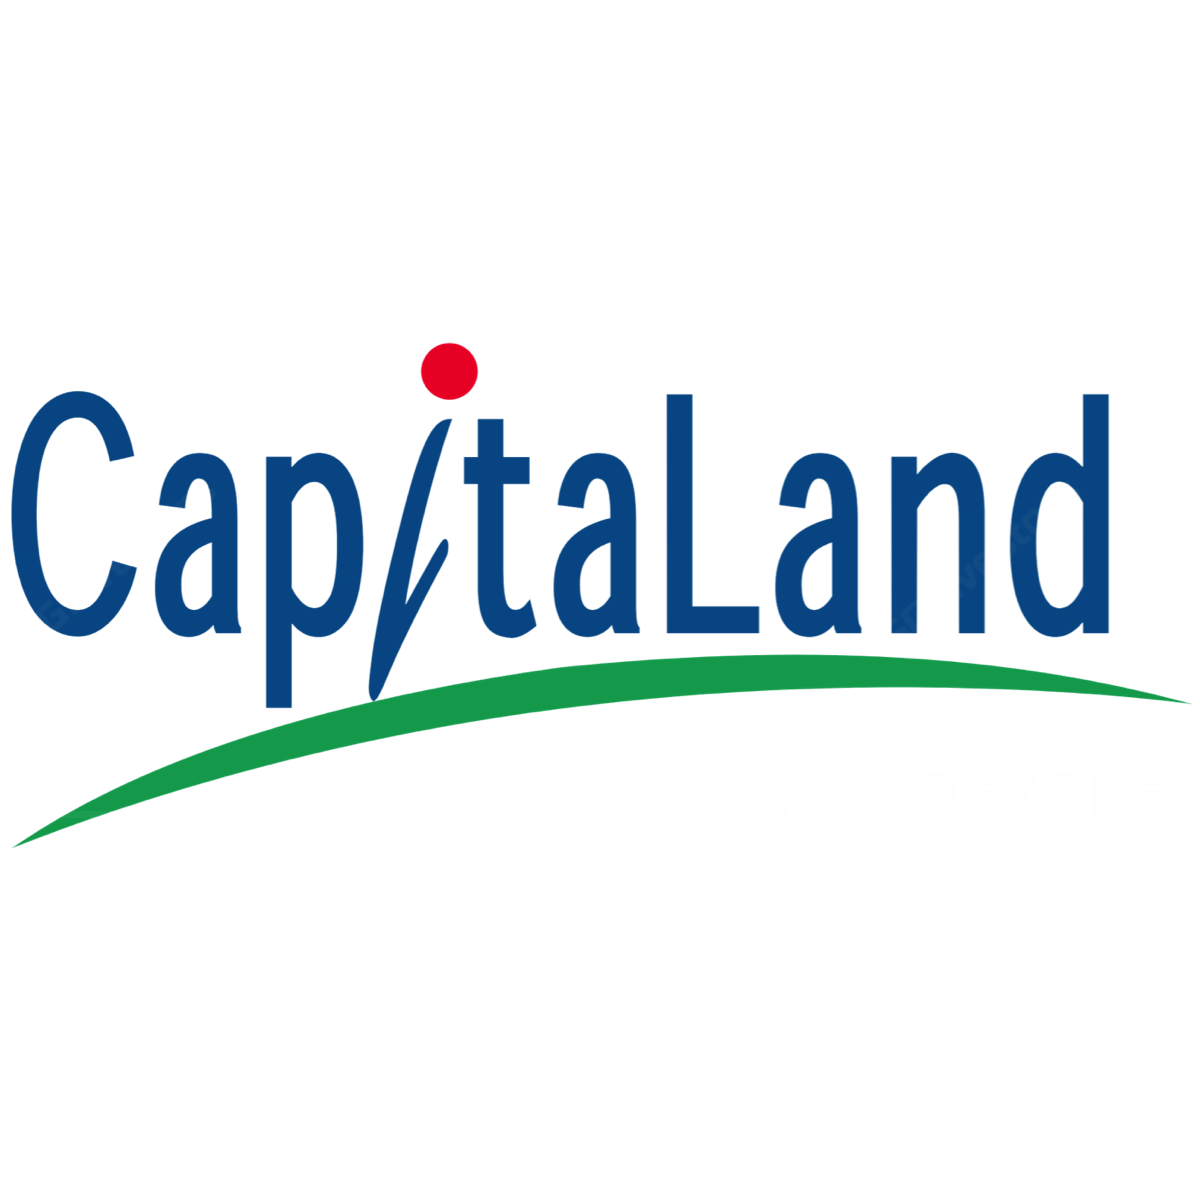 CapitaLand - DBS Group Research 2018-08-10: Rebalancing Strategy Bearing Fruit